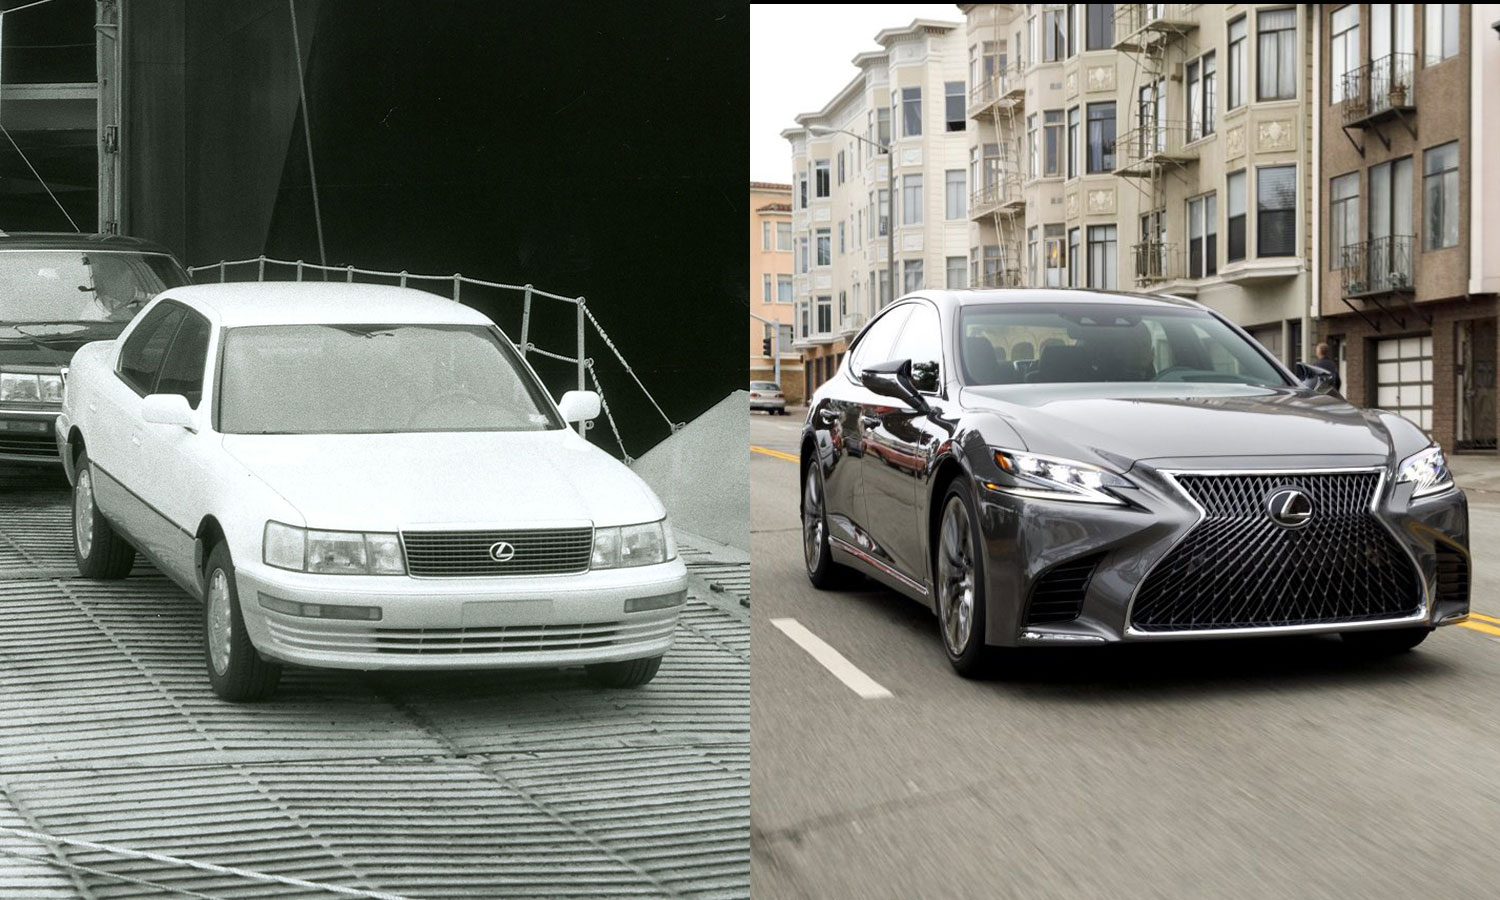 30 YEARS OF REDEFINING LUXURY, AND LEXUS IS JUST GETTING STARTED